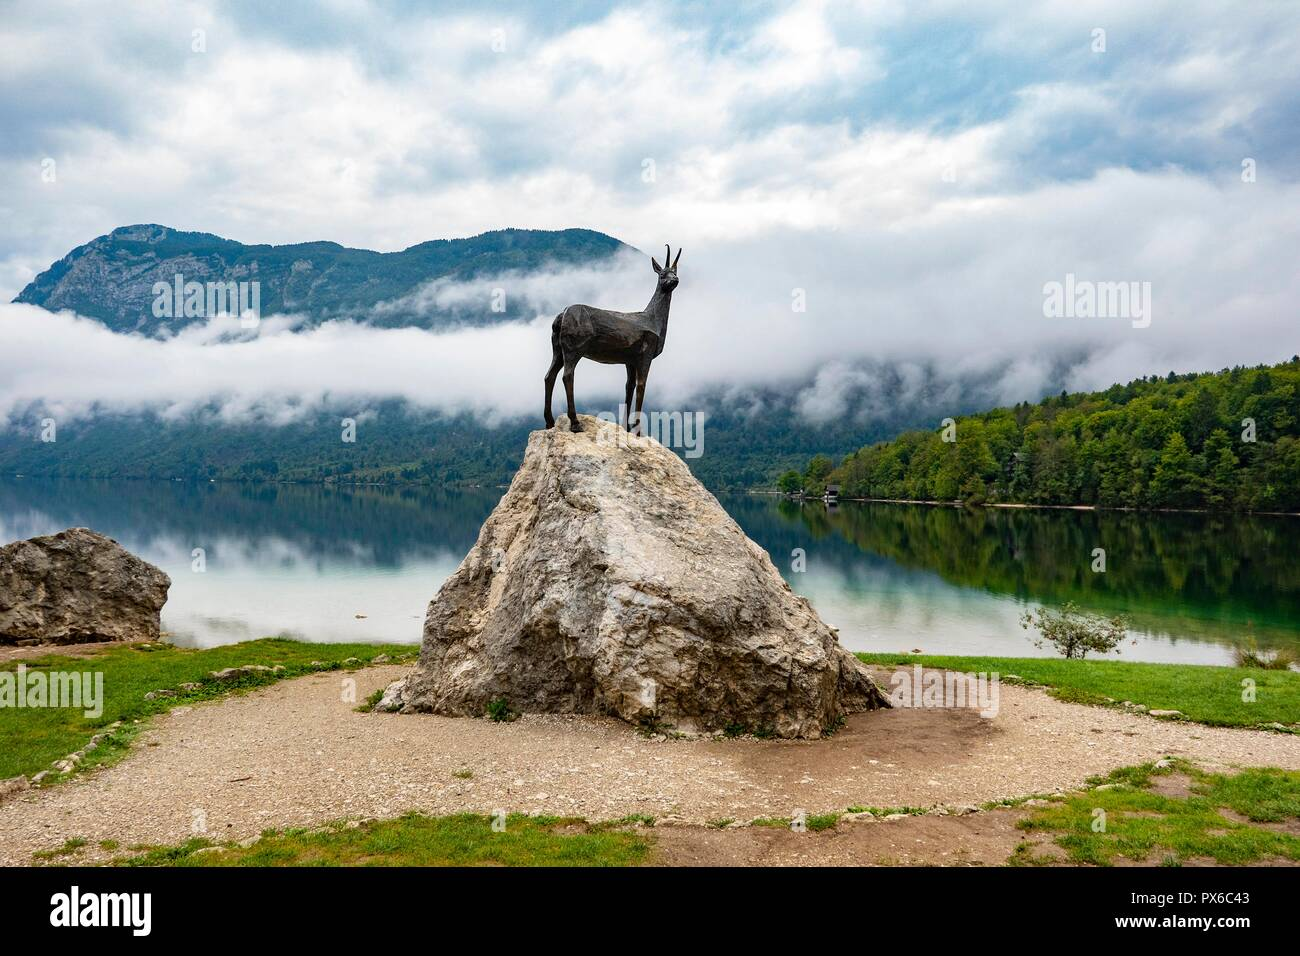 Slovenia, Bohinjskao-Lake, Ribcev Laz,09.15.2018. Statue of the mystical deer Zlatorog (Goldhorn) at the lakeside reminds of a well known fairy tale - Stock Image